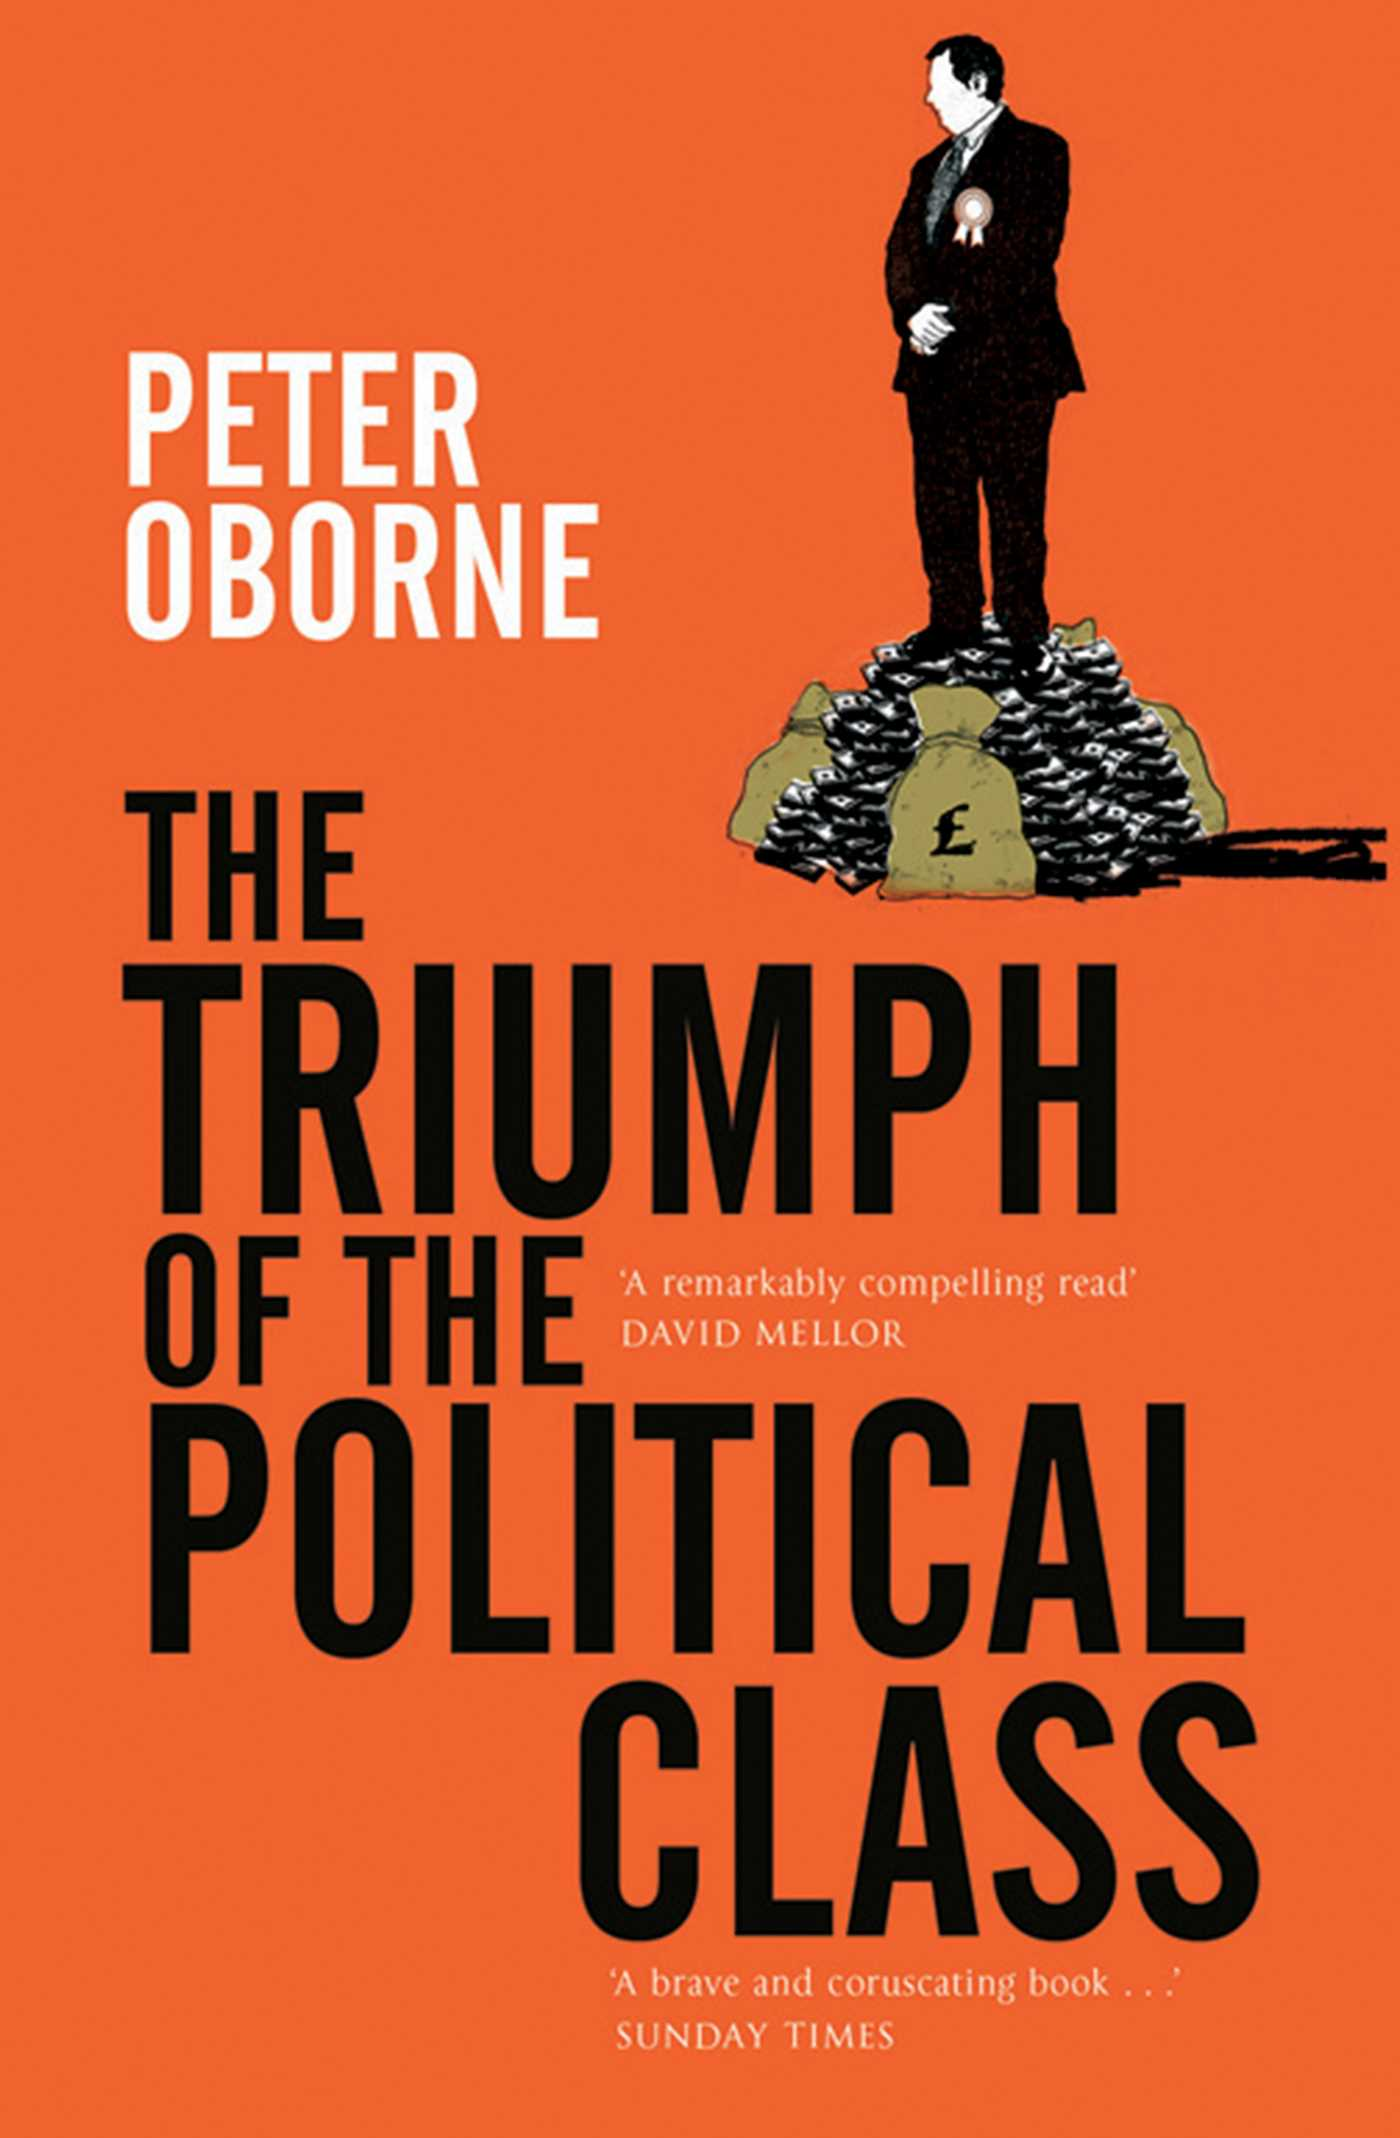 Triumph of the political class 9781471142048 hr